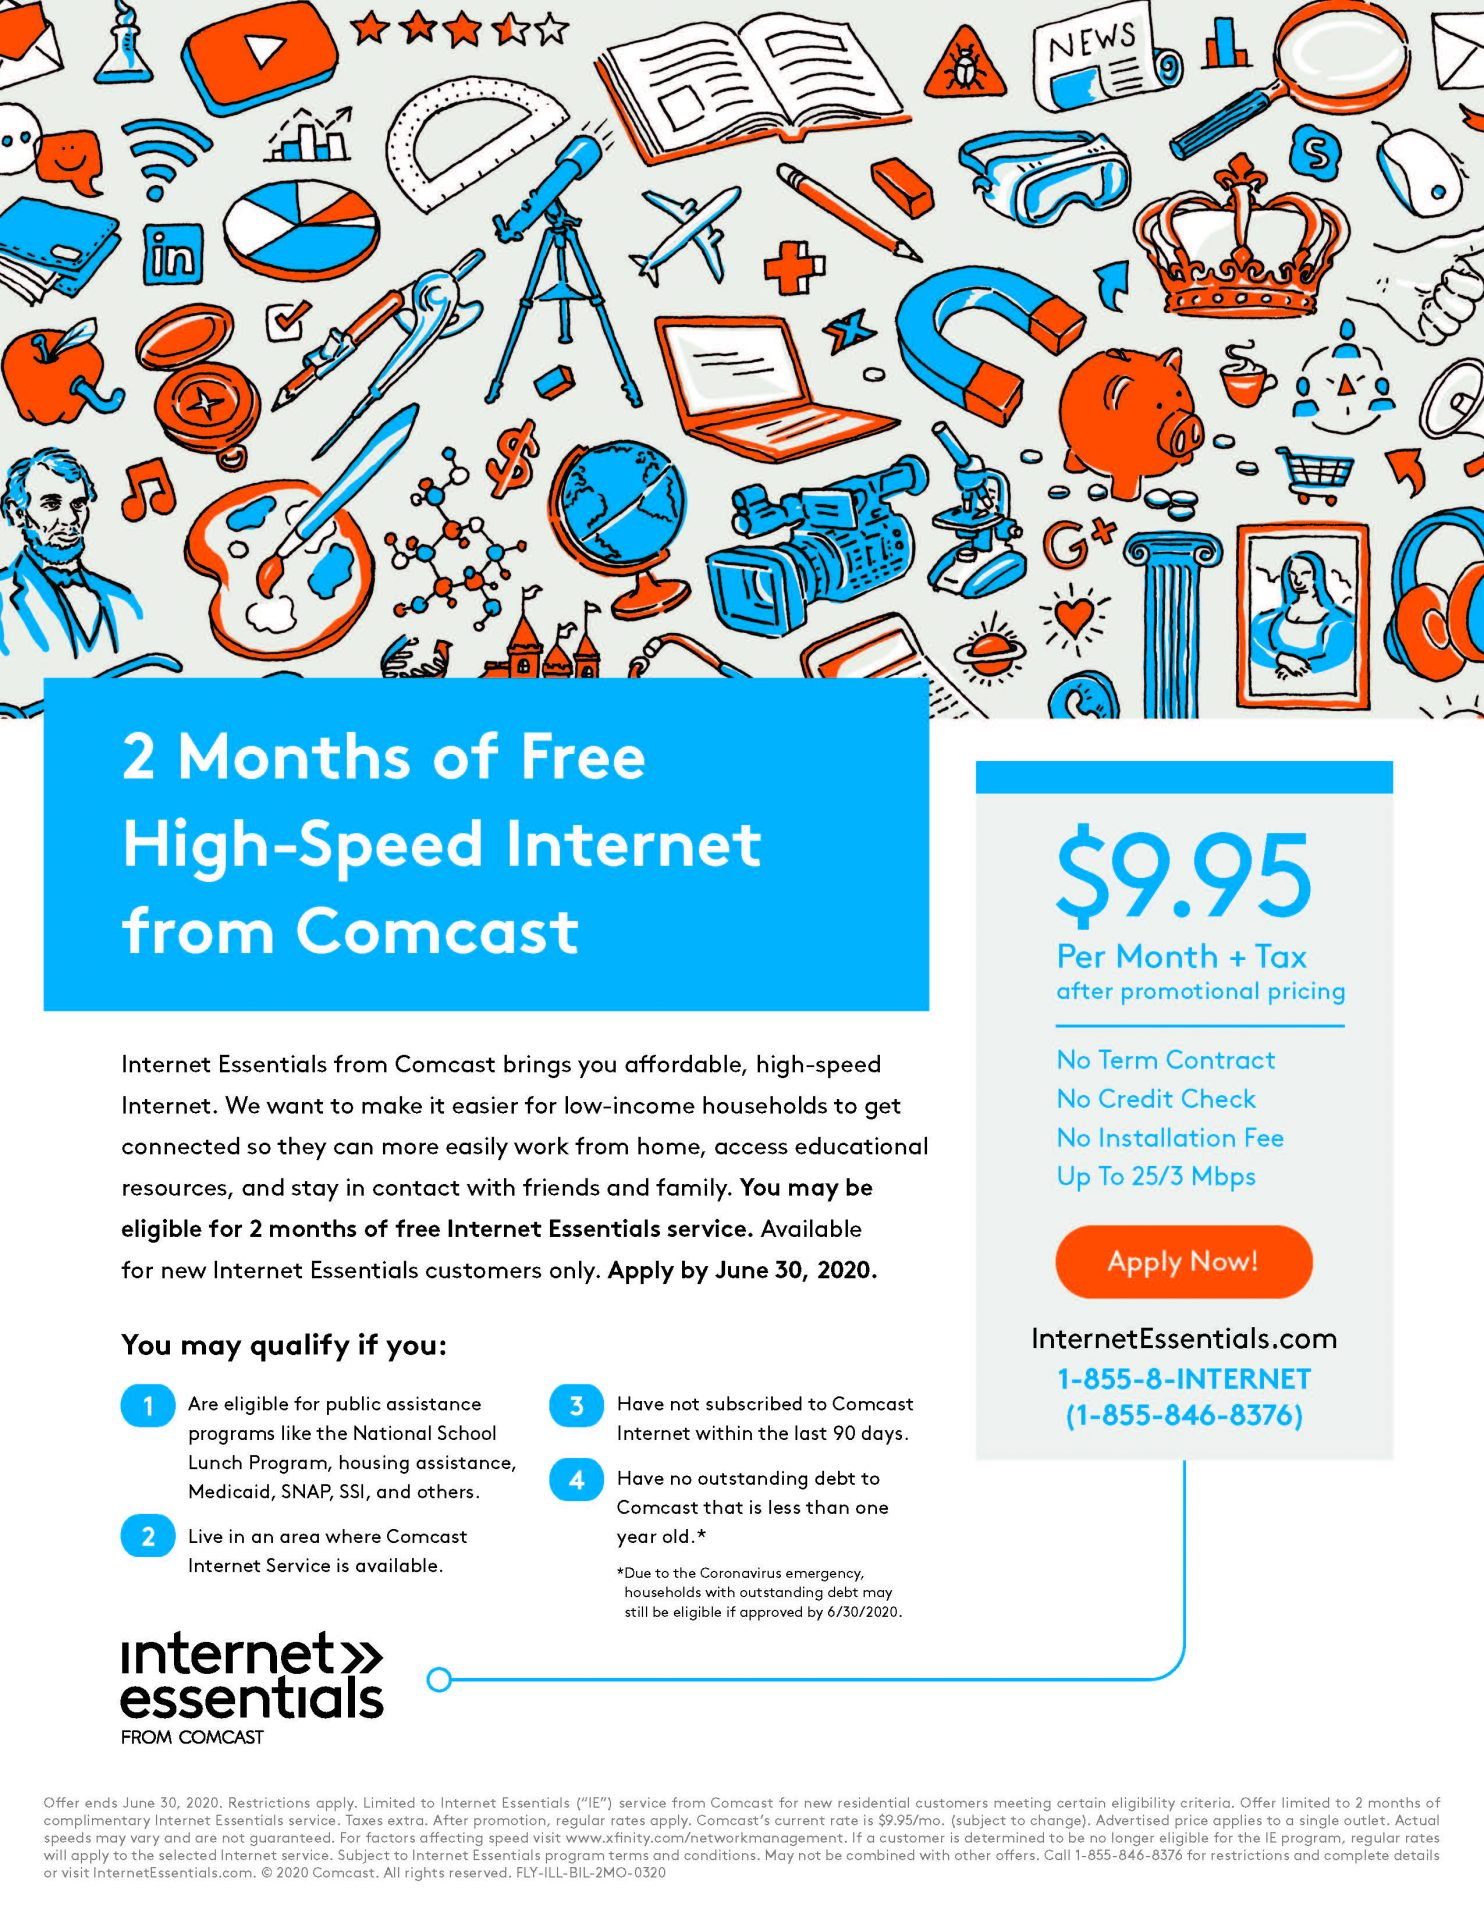 Are You Eligible for Comcast's Internet Essentials?